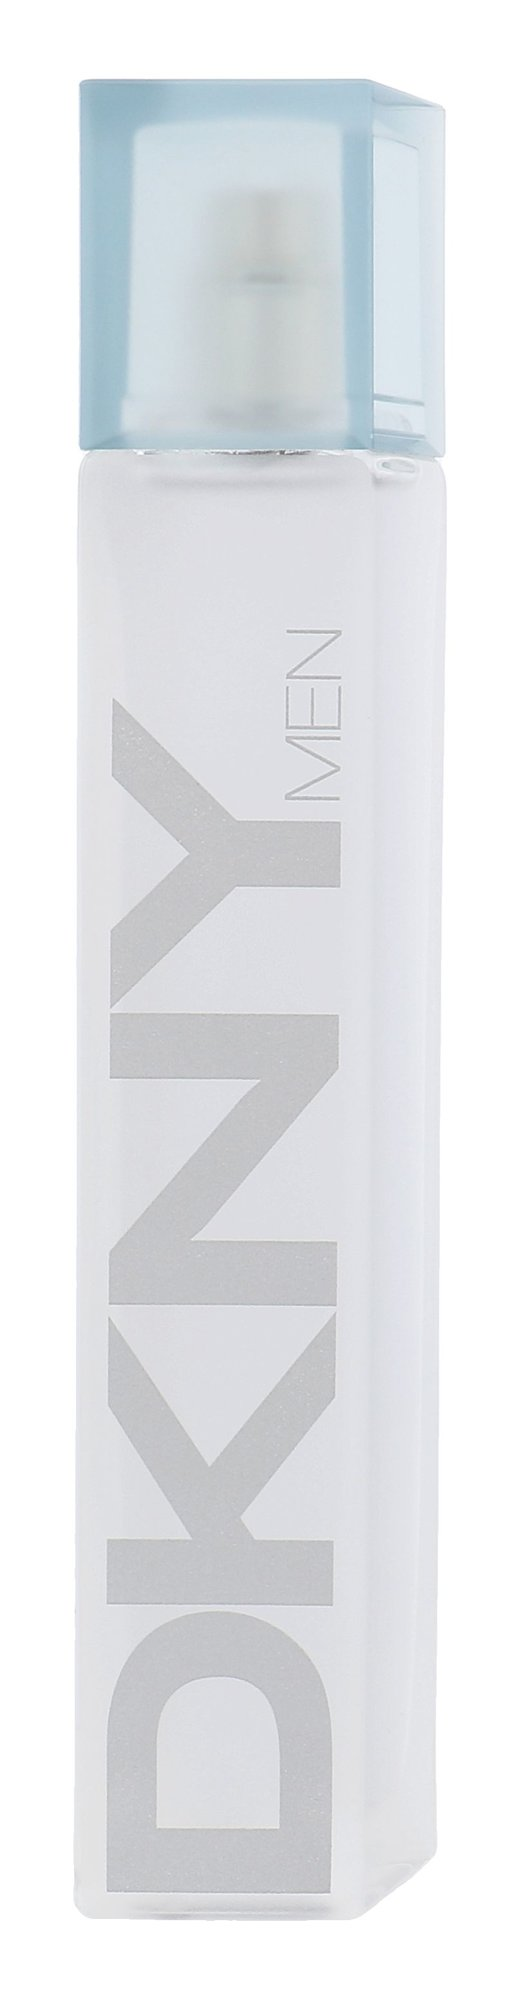 DKNY DKNY Men EDT 50ml